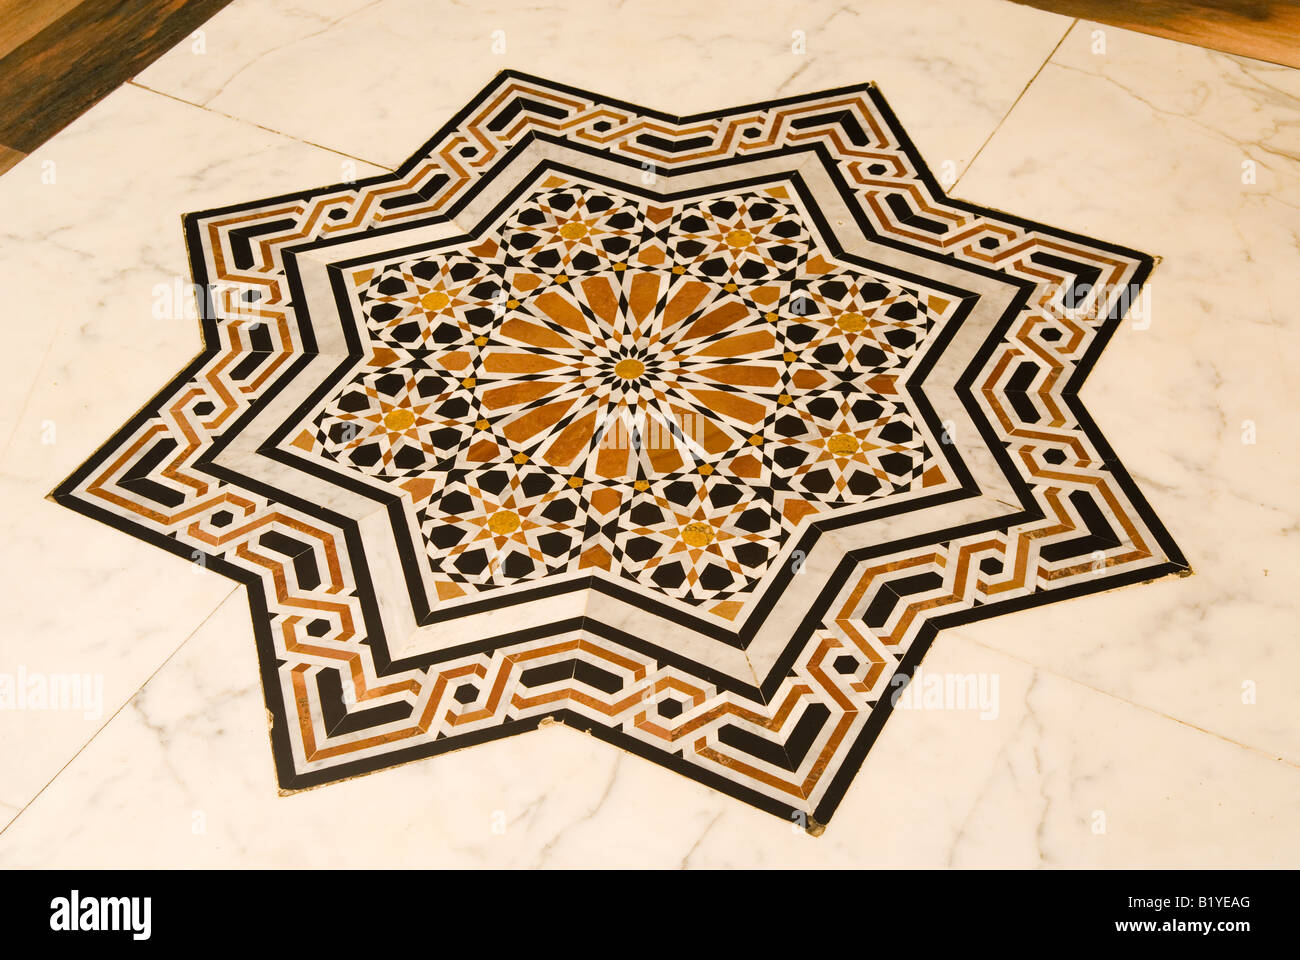 Decorative islamic floor tiles in sultan muhammad al fati7 mosque decorative islamic floor tiles in sultan muhammad al fati7 mosque beirut lebanon middle east dailygadgetfo Choice Image